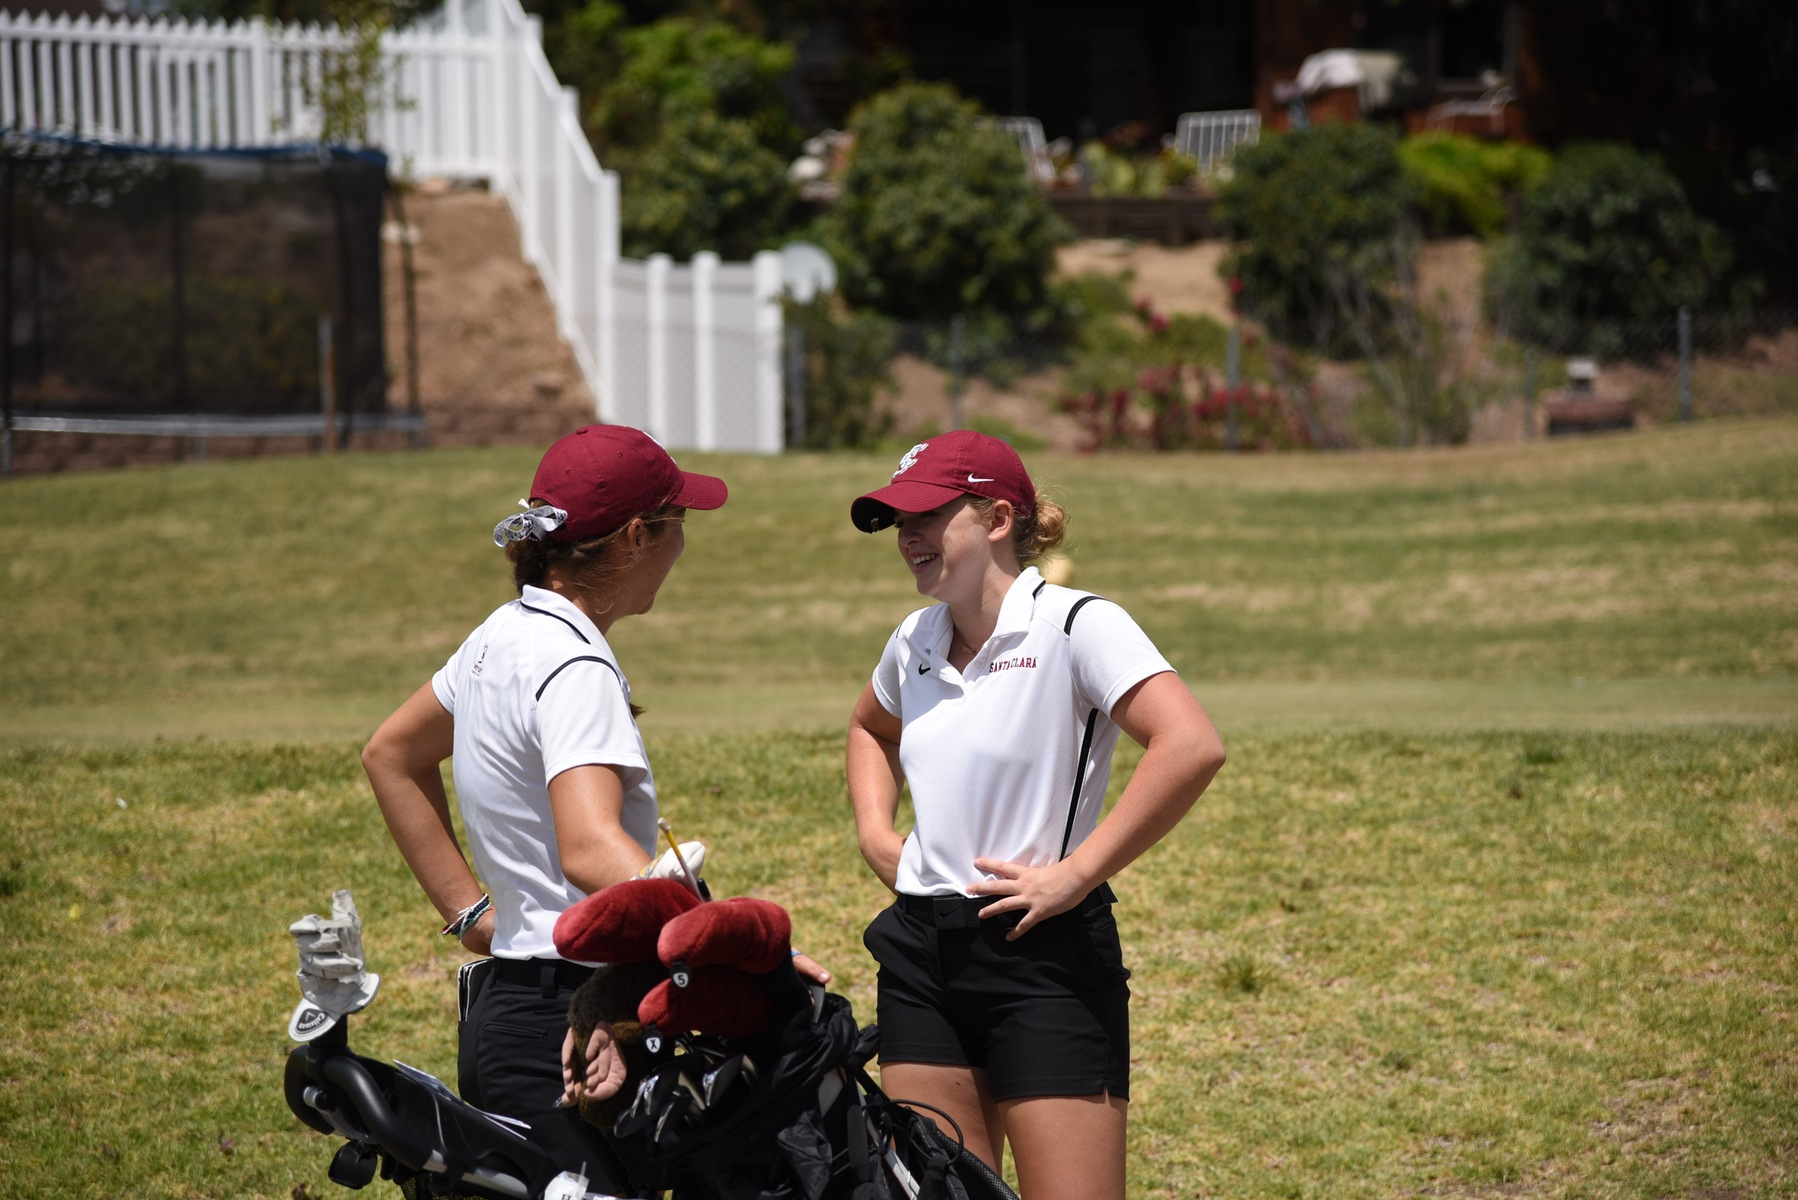 Women's Golf Ties For Third At Wyoming Cowgirl Desert Intercollegiate